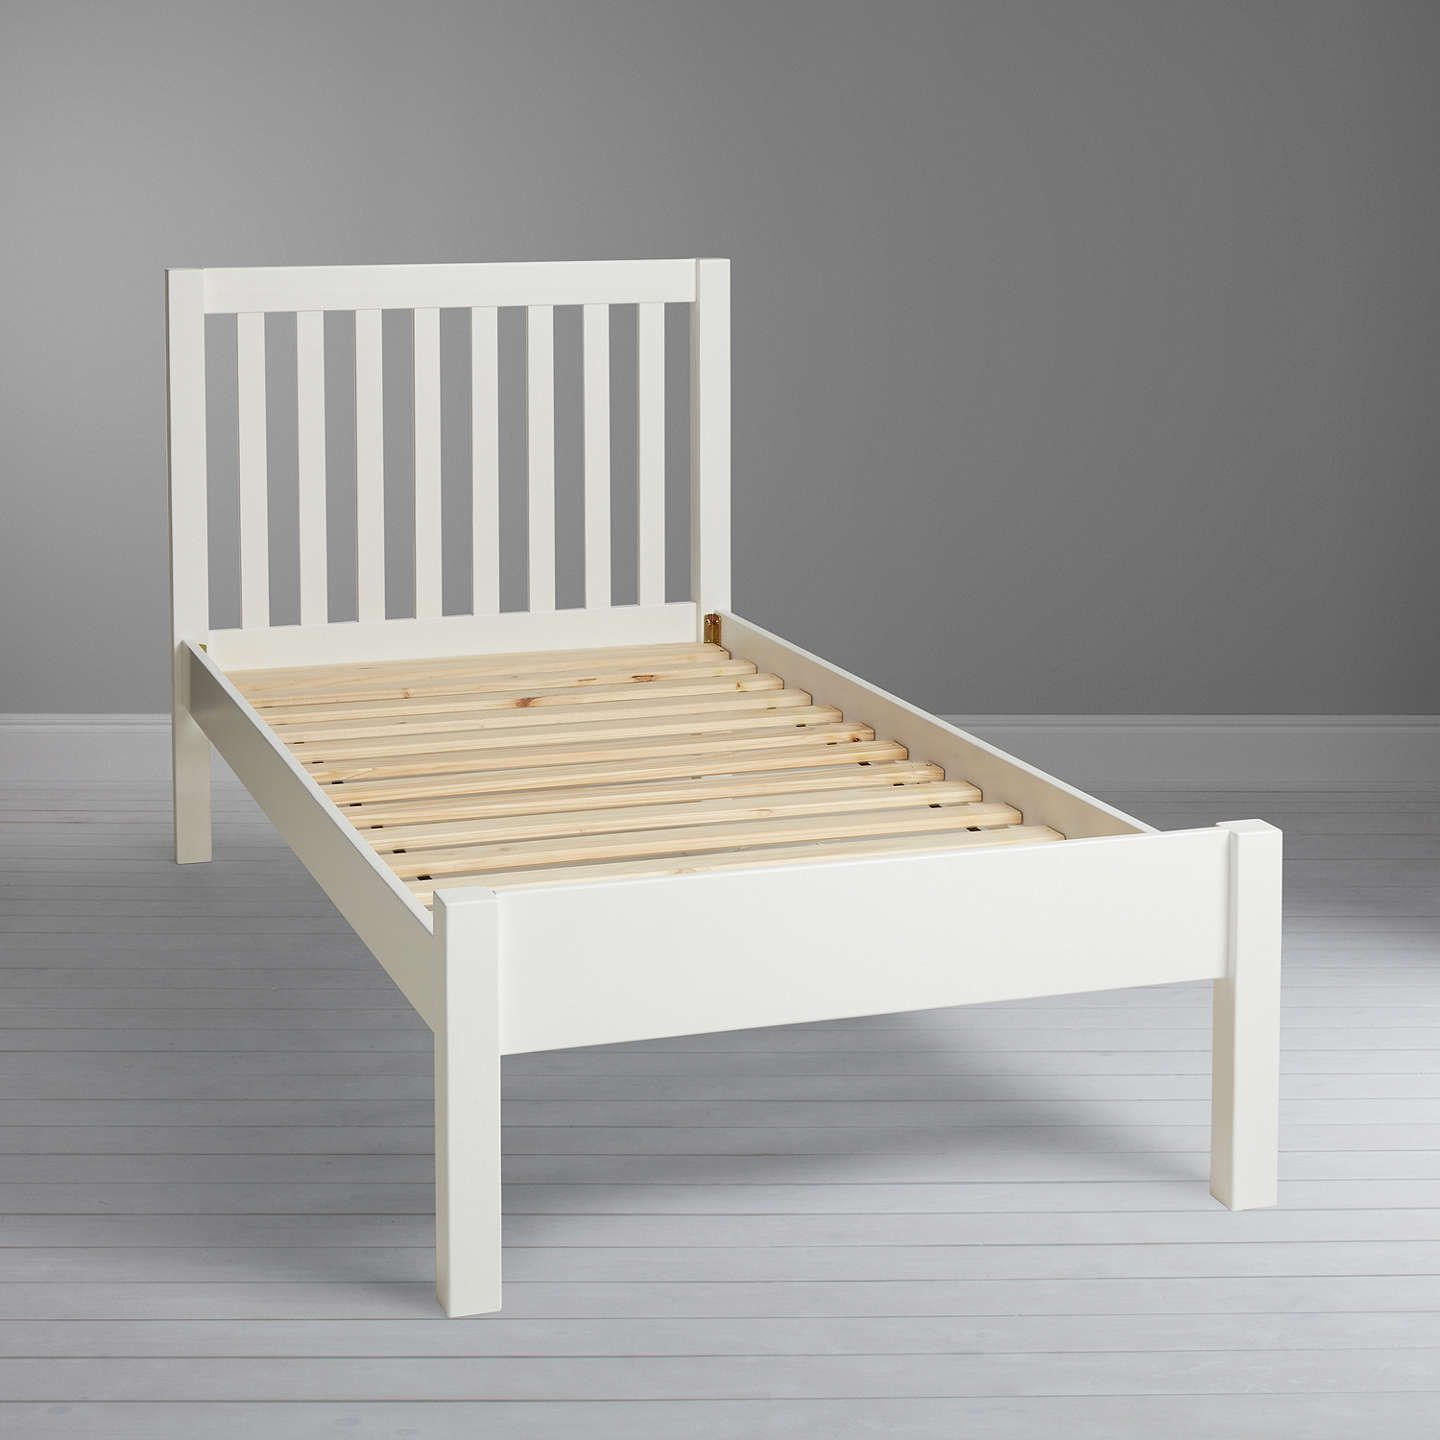 John Lewis Wilton Child Compliant Bed Frame, Single At John